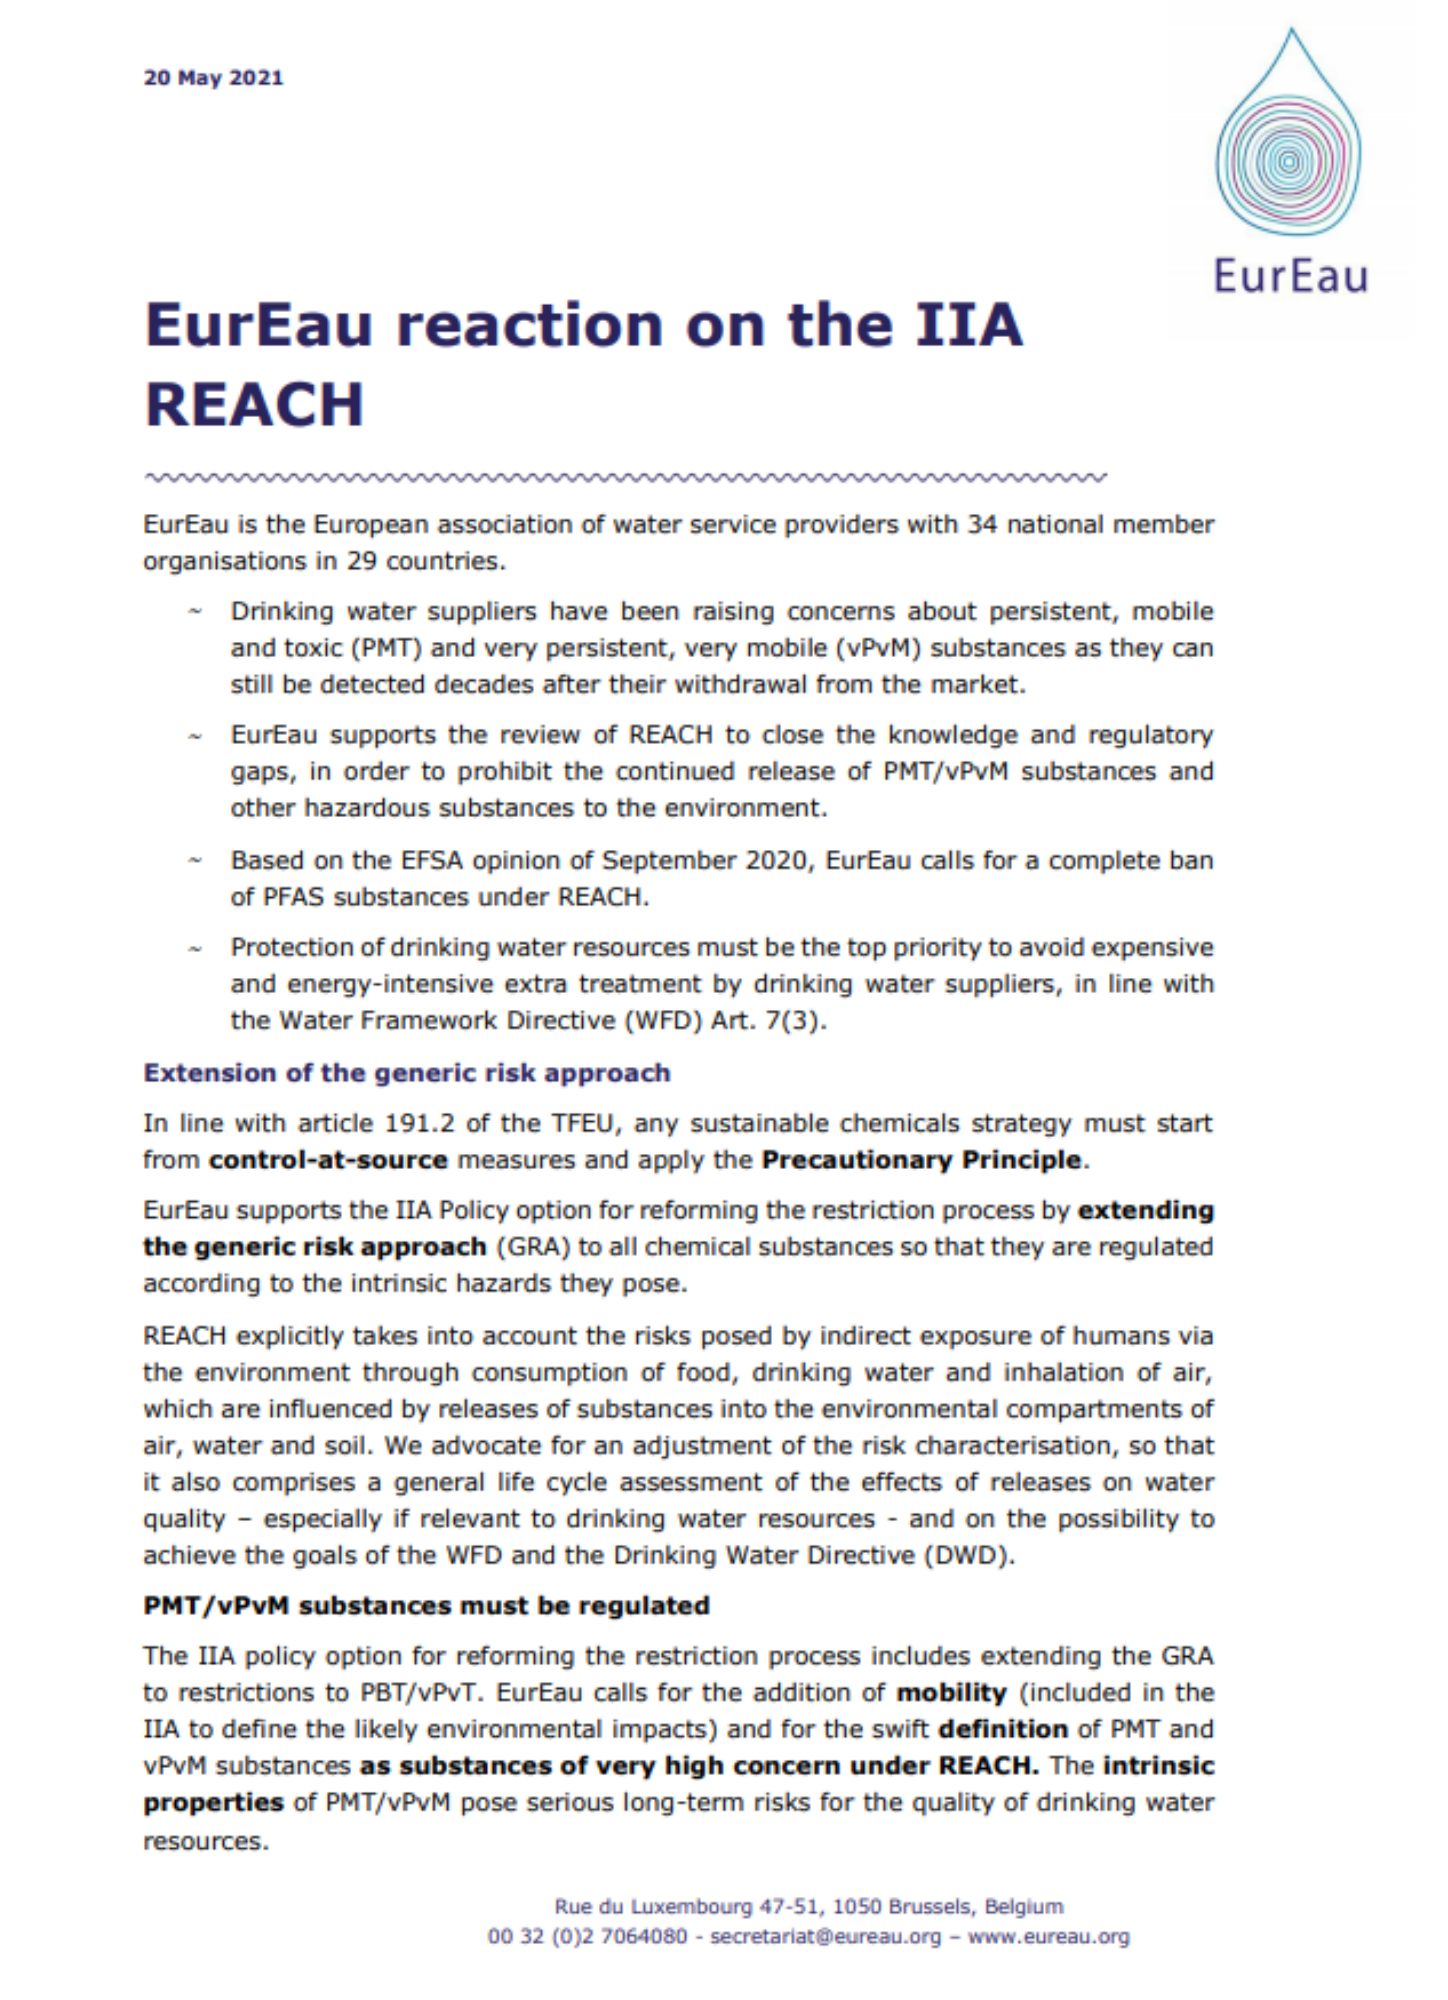 EurEau feedback on the roadmap for the revision of the REACH Regulation